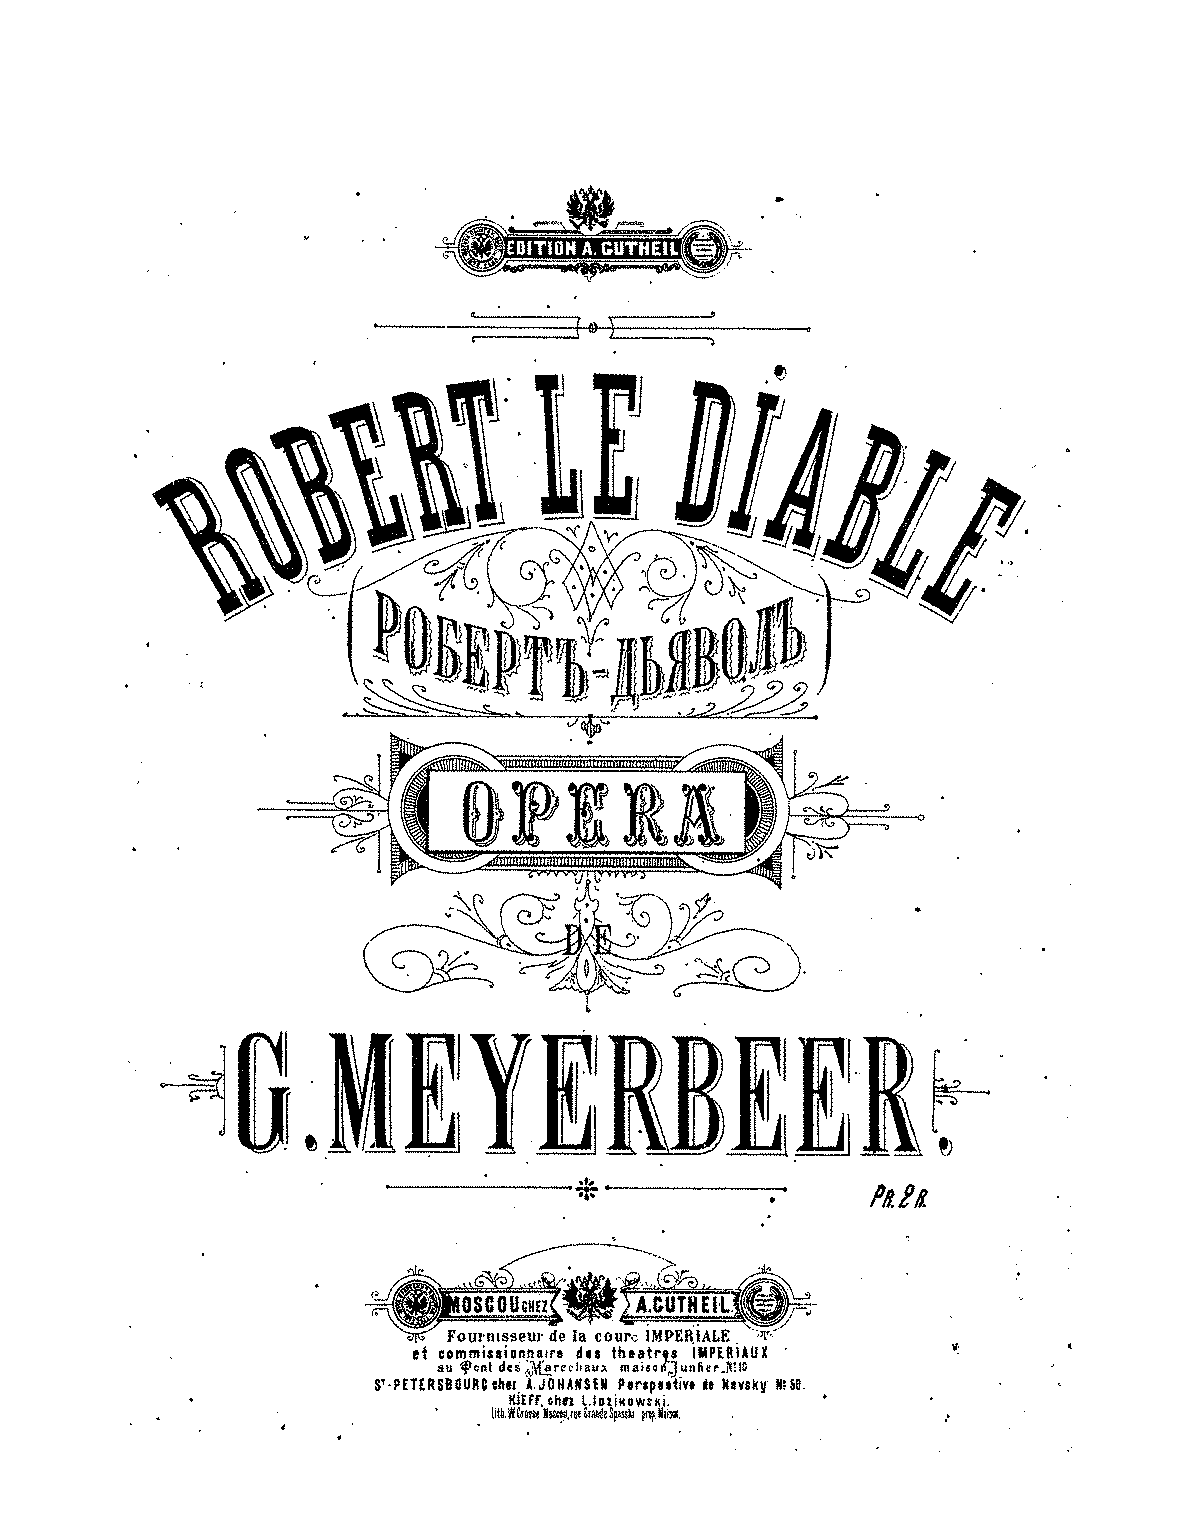 PMLP91402-Meyerbeer - Robert le diable PS rsl.pdf